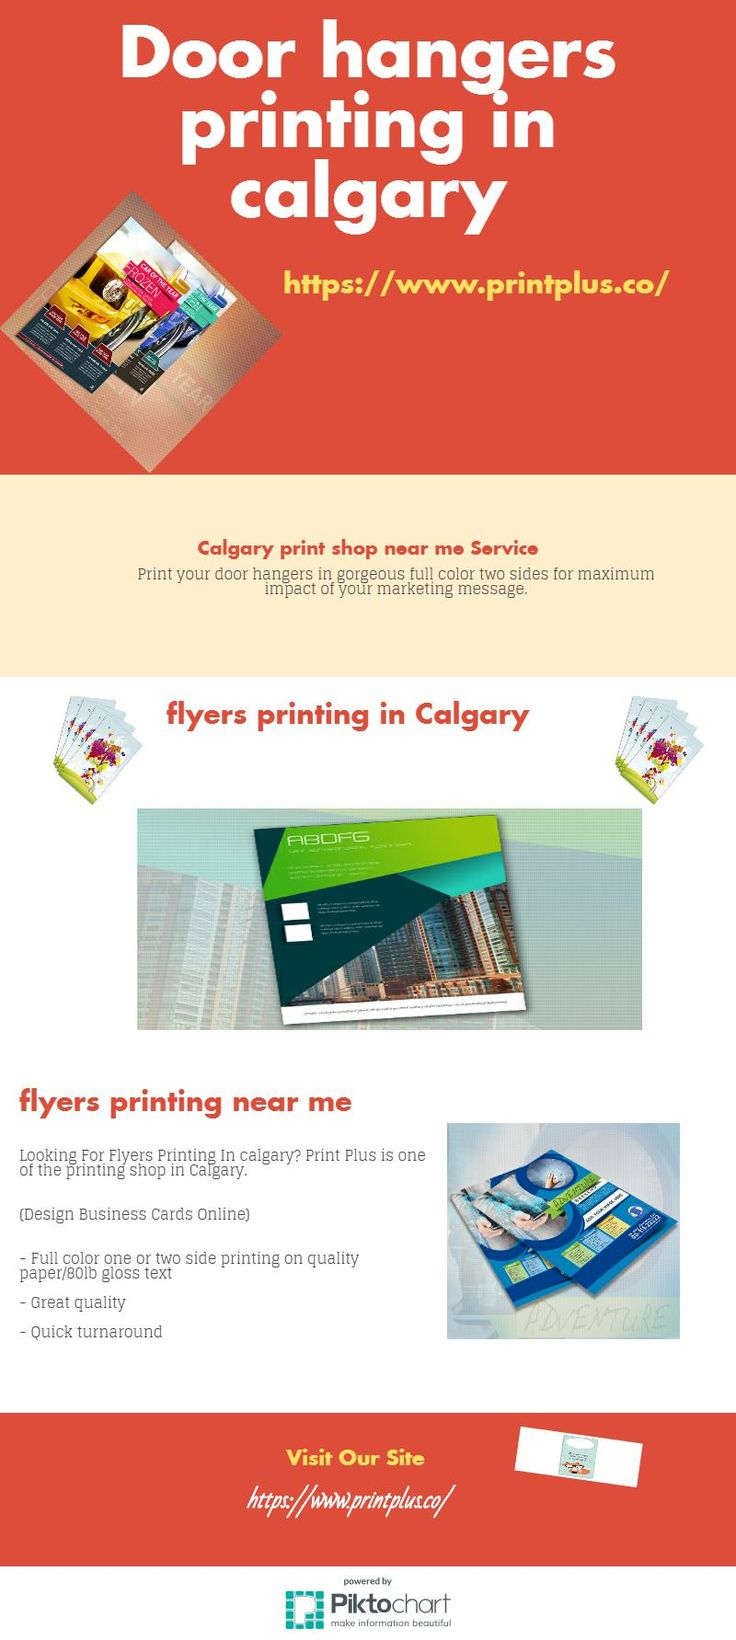 Co co color printouts in bangalore - The 25 Best Ideas About Business Cards Online On Pinterest Business Cards Business Card Design And Personal Cards Design